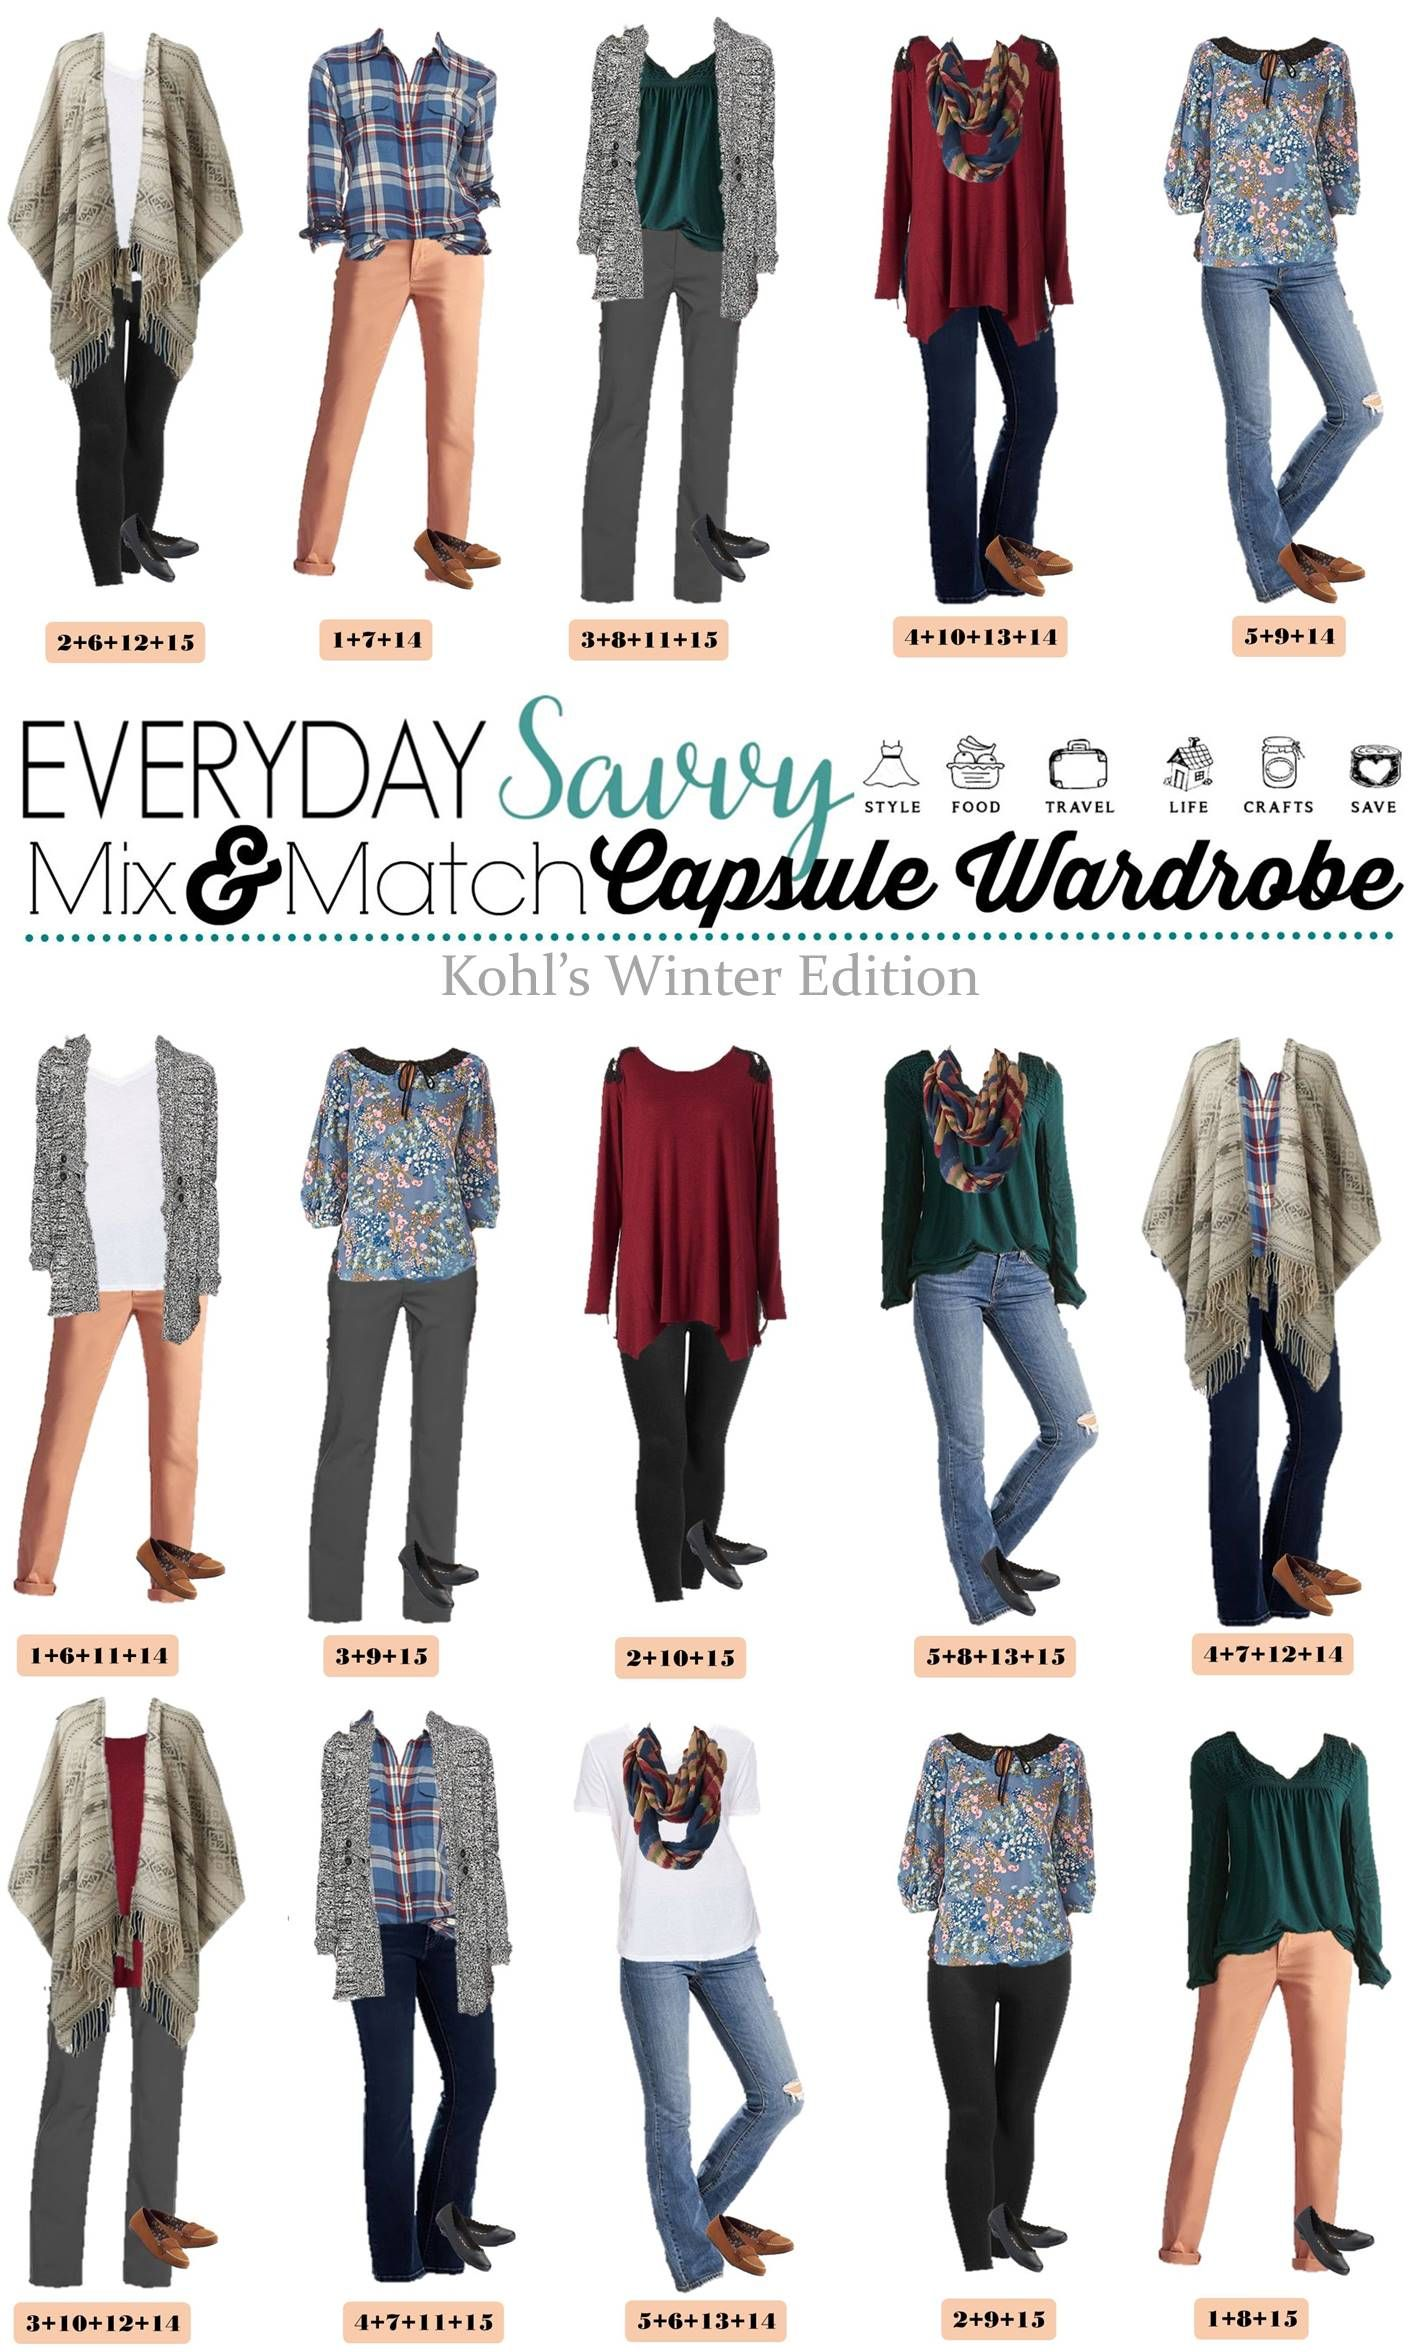 Winter Capsule Wardrobe For 2017 And 2018: Mix And Match Kohls Winter Capsule Wardrobe